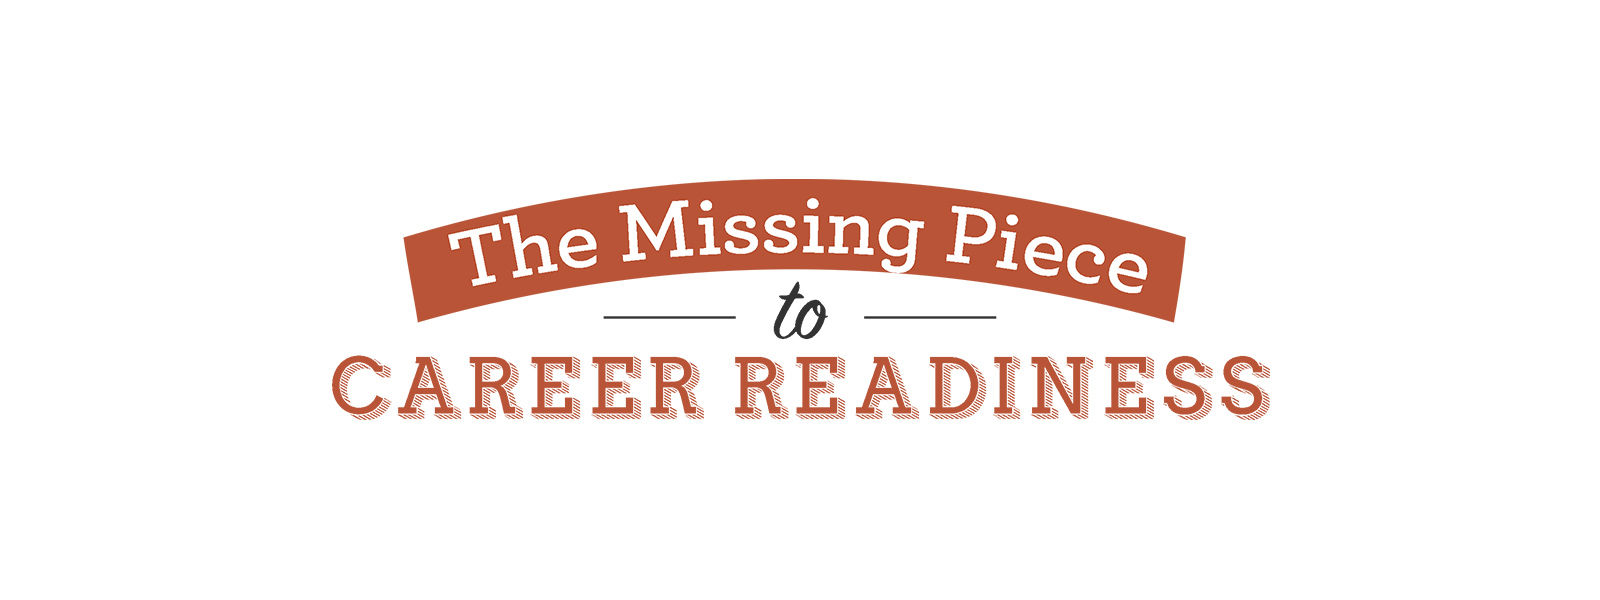 The Missing Piece to Career Readiness